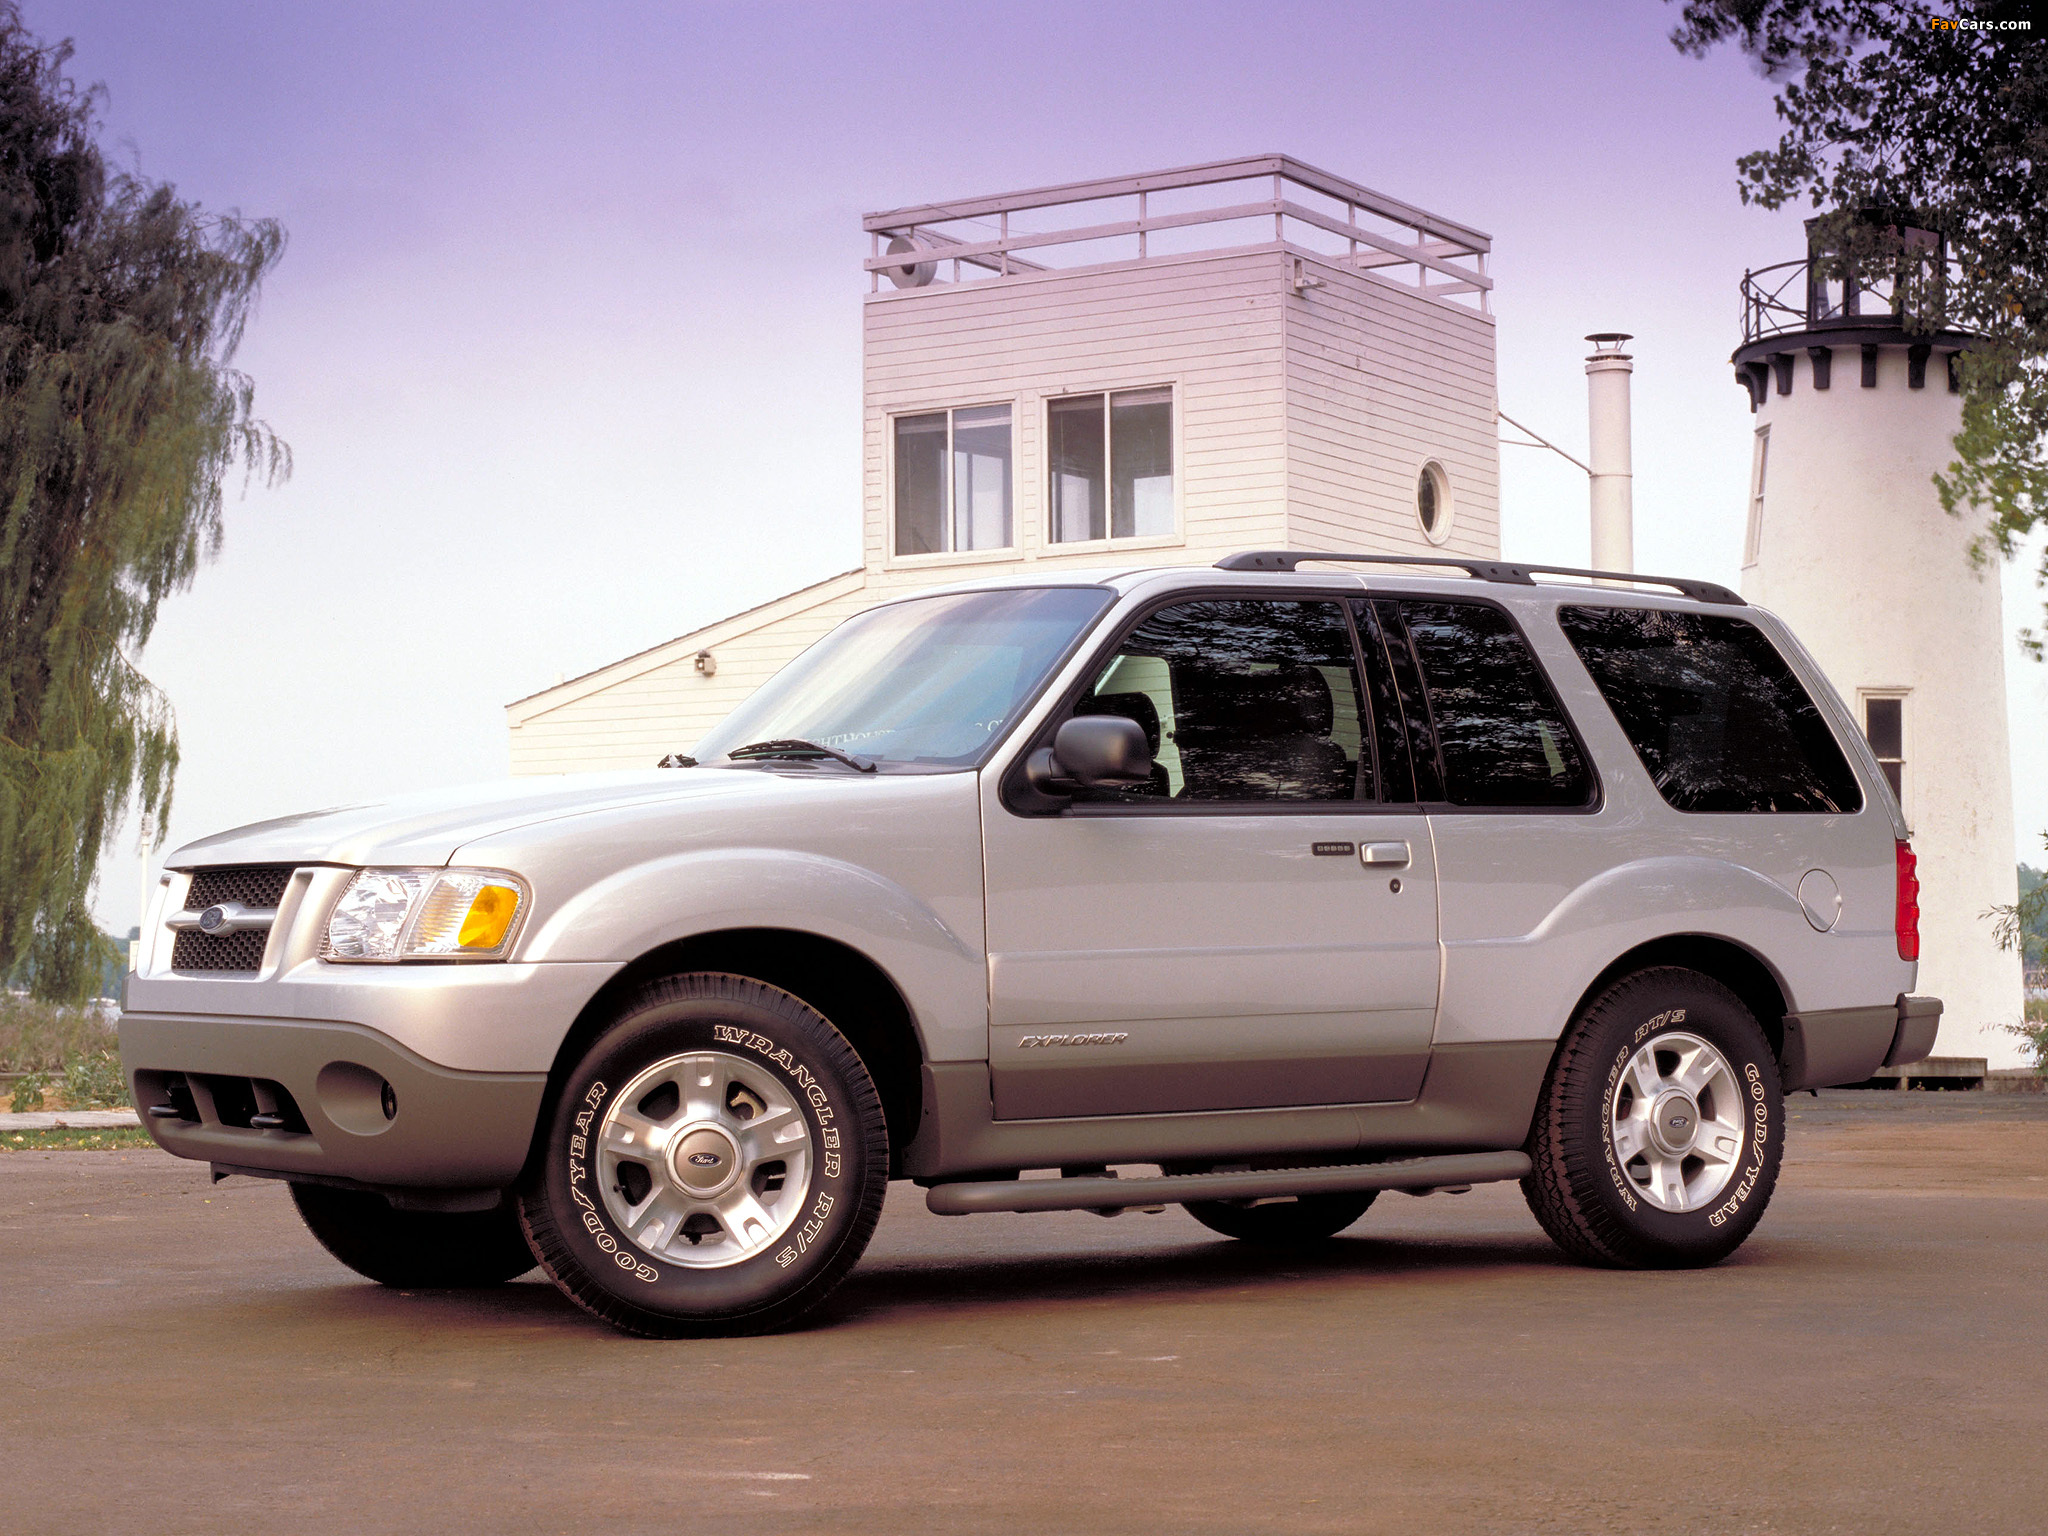 74895 Best Looking Ford Endeavour Country Yup likewise Dodge Dart besides 1992 02 Isuzu Trooper additionally Watch in addition Colin Mcrae Rally Car Wallpaper 2311. on 2001 ford explorer